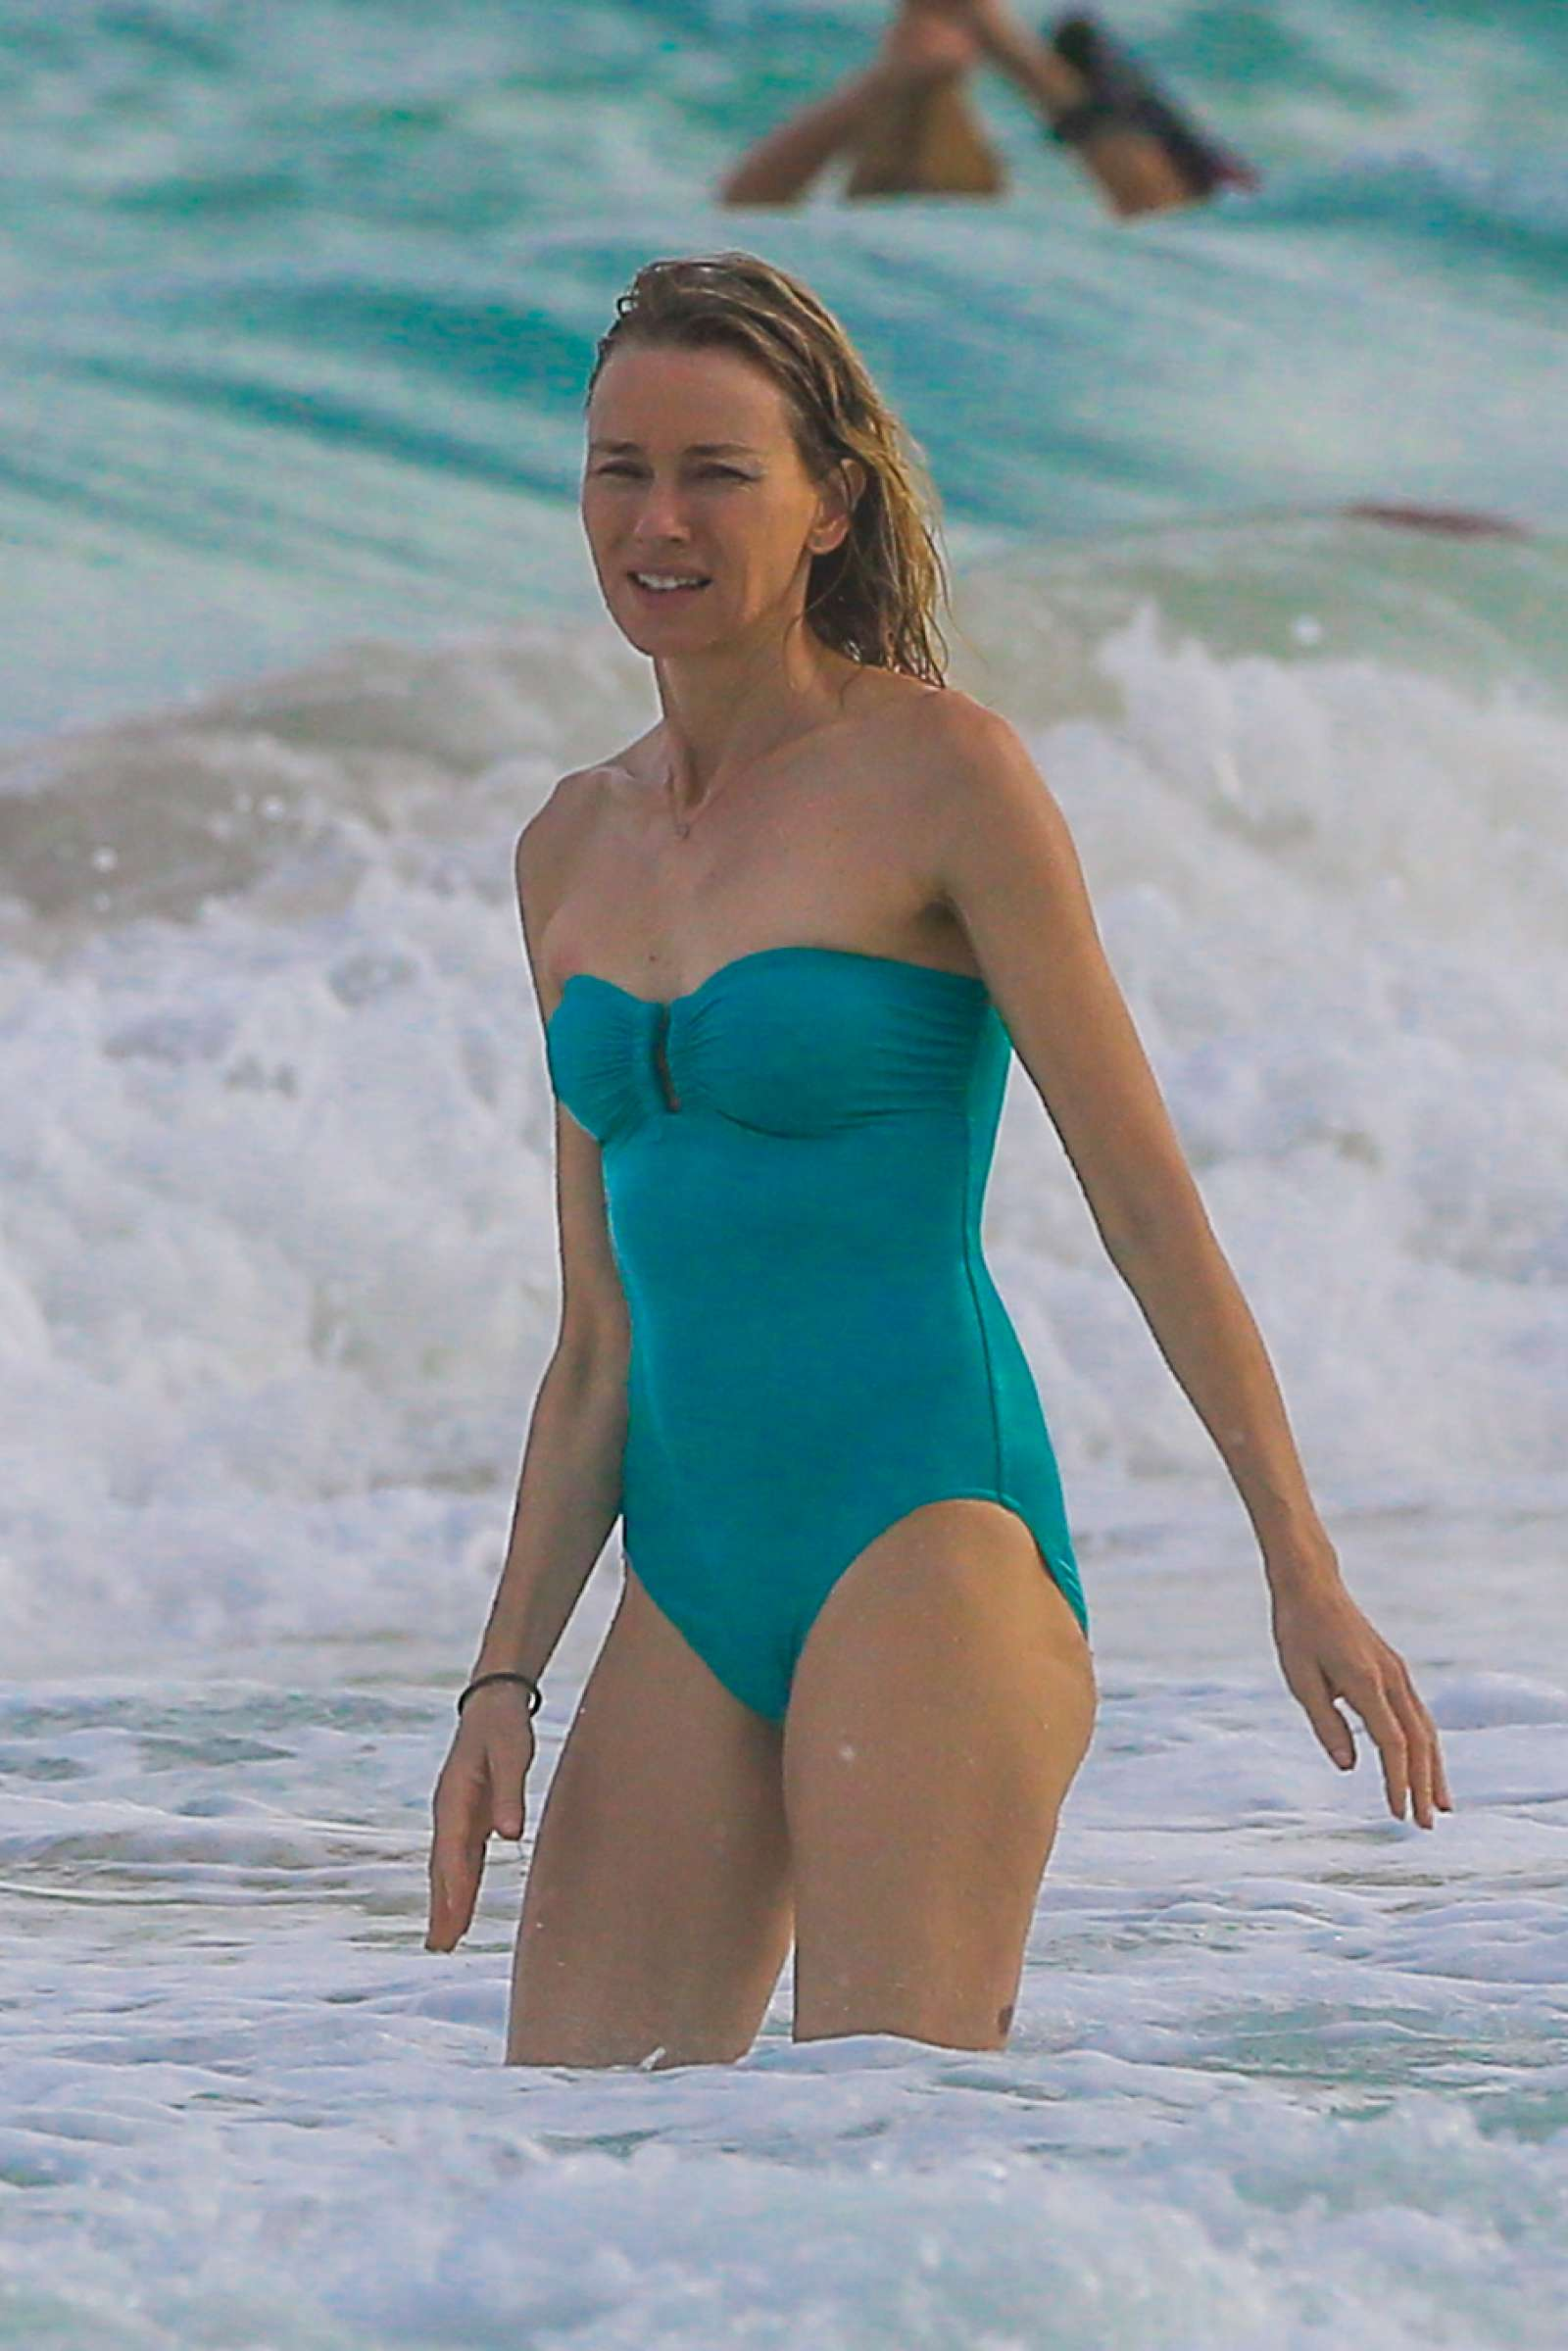 Naomi Watts in Blue Swimsuit on the Beach in Cancun